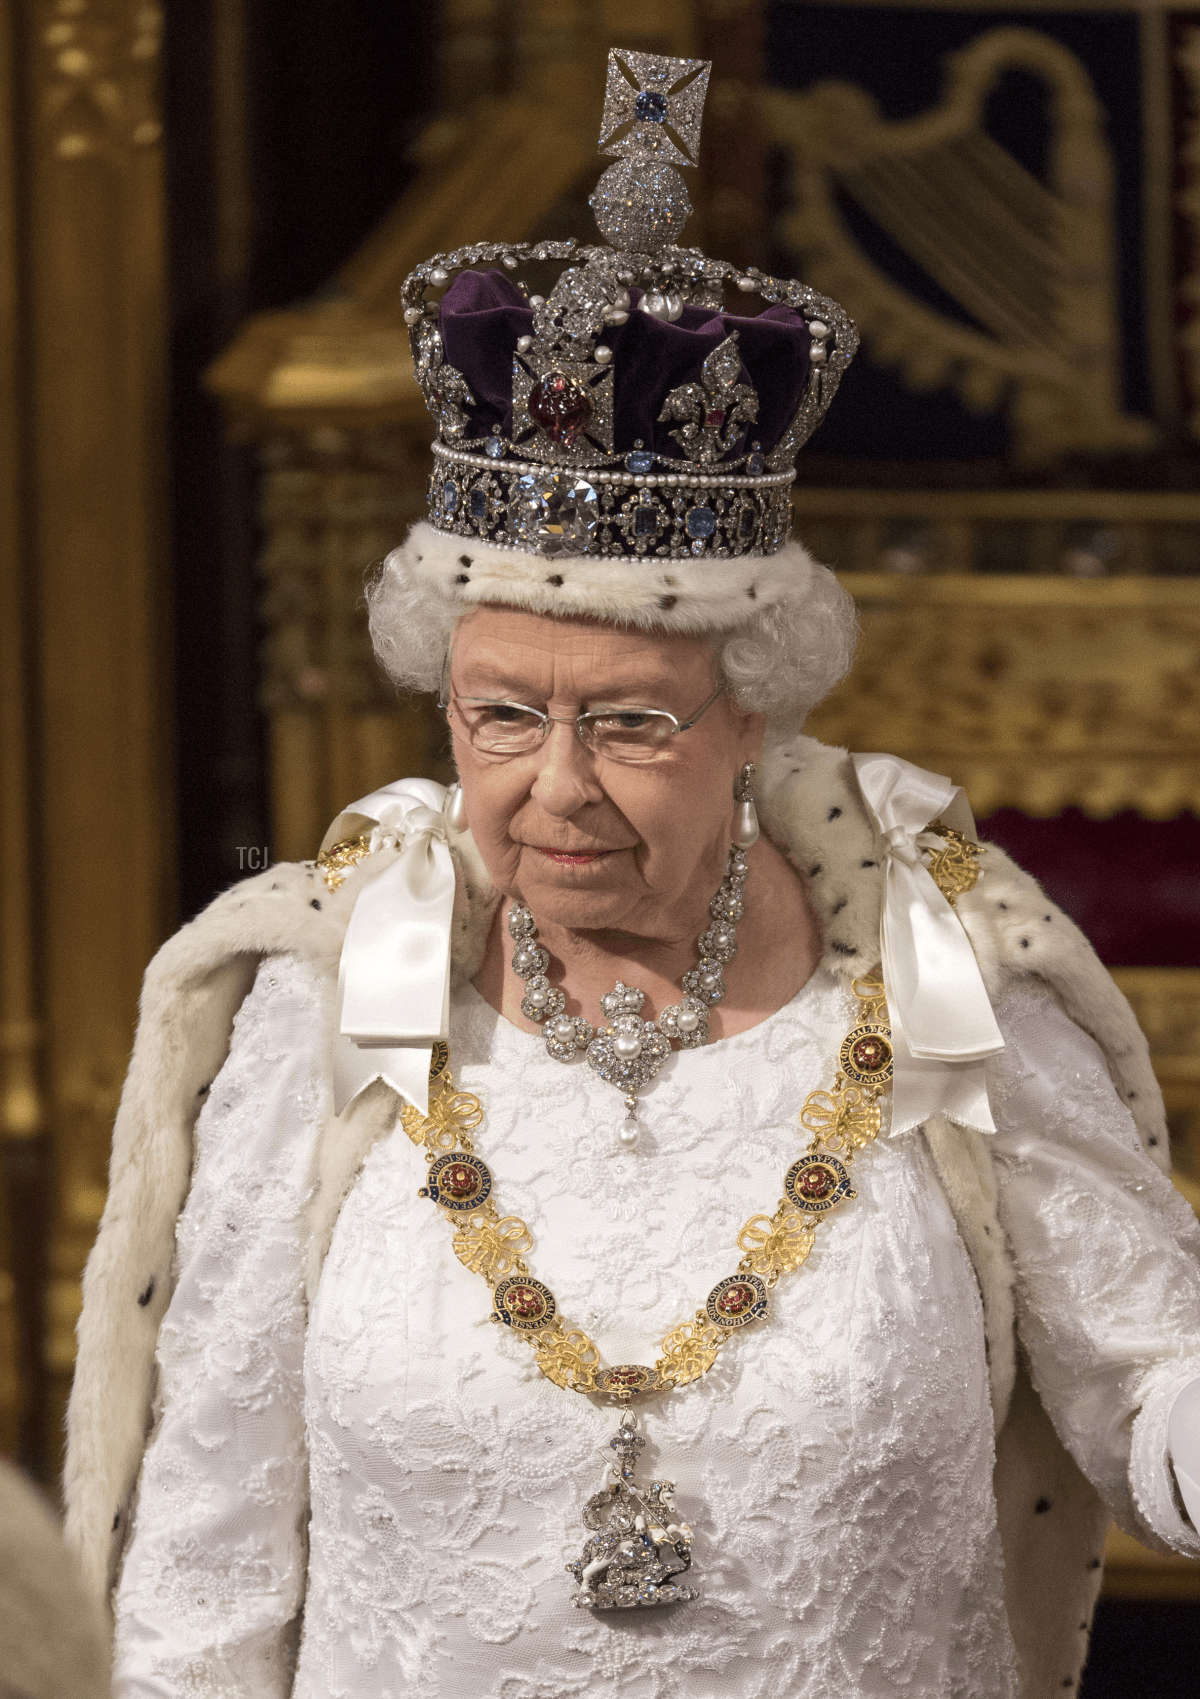 Queen Elizabeth II stands during State Opening of Parliament in the House of Lords at the Palace of Westminster on May 18, 2016 in London